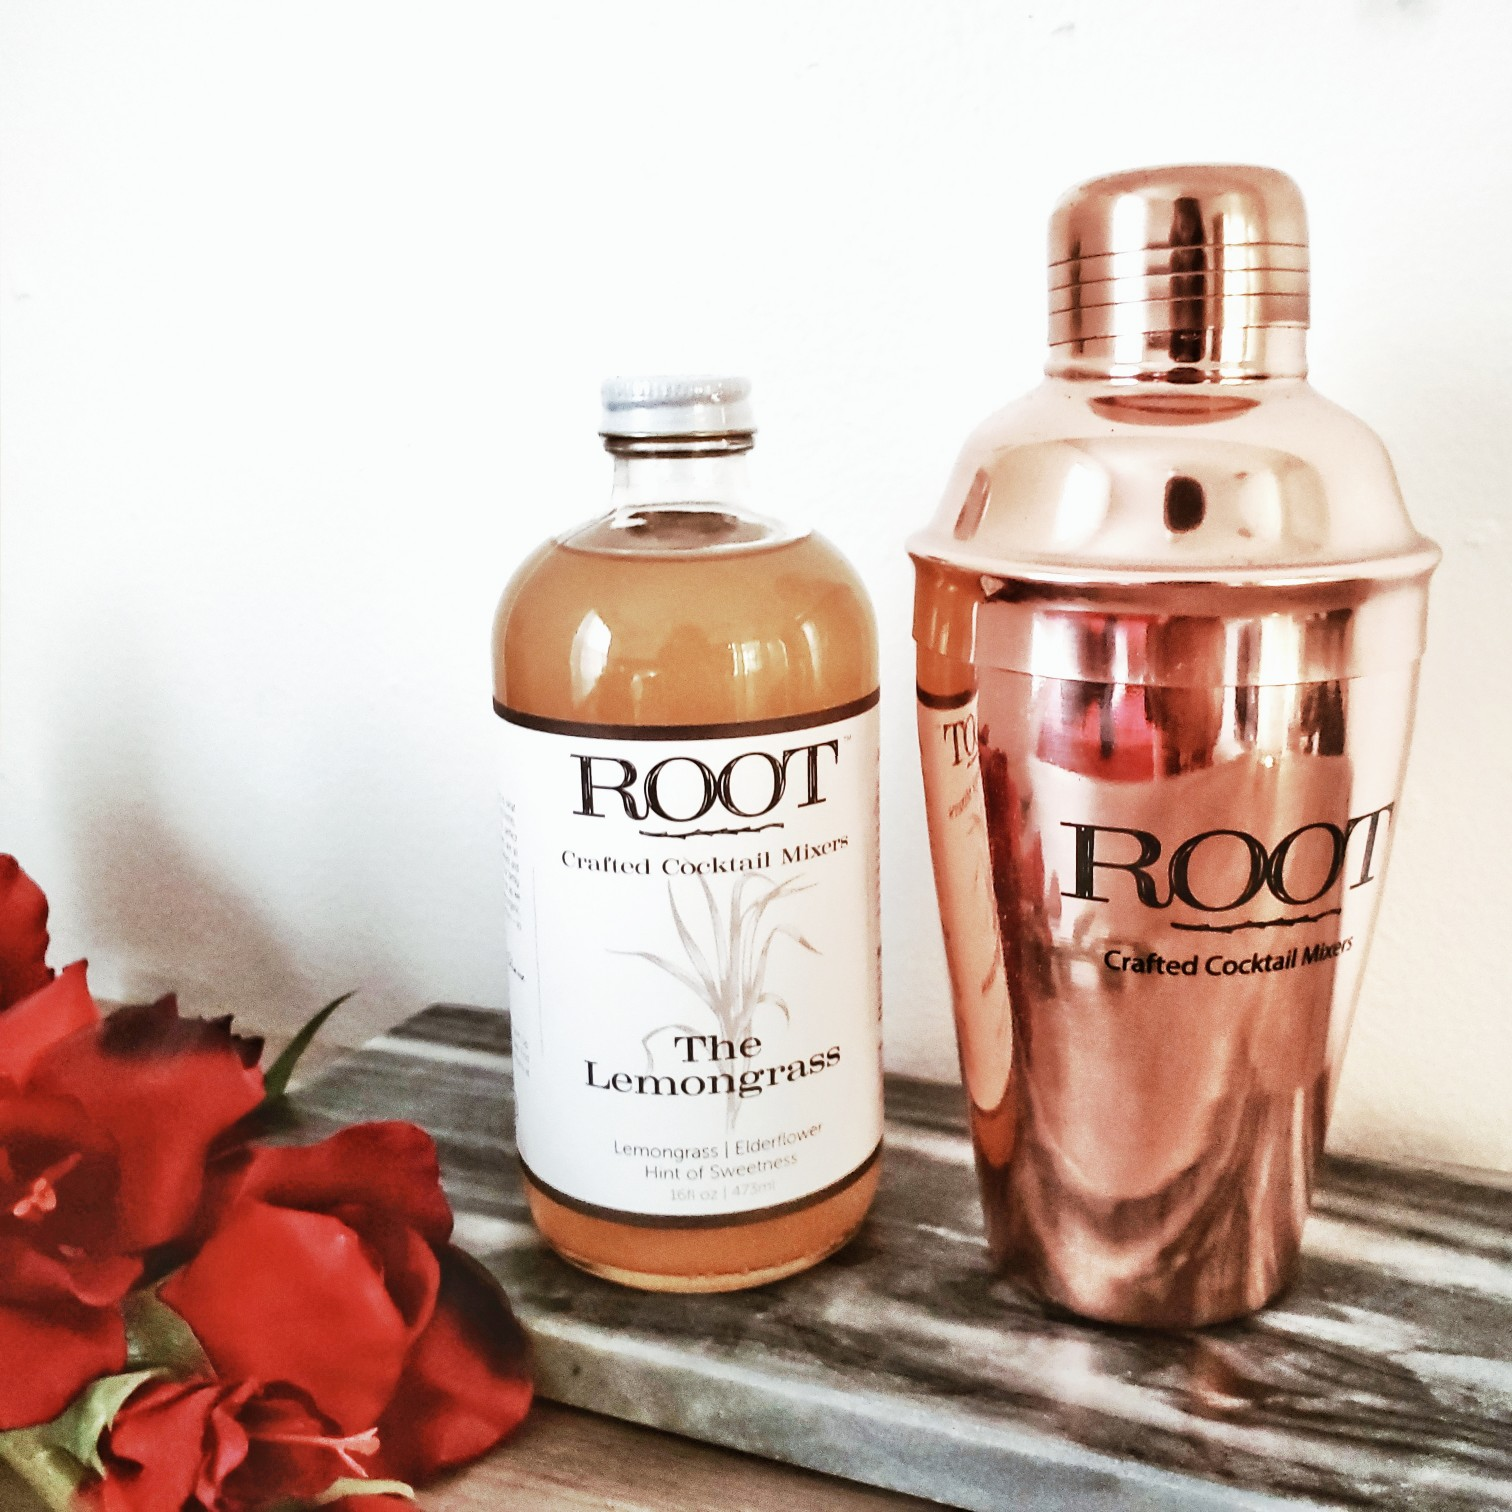 Artisanal Cocktail Mixer from ROOT Crafted